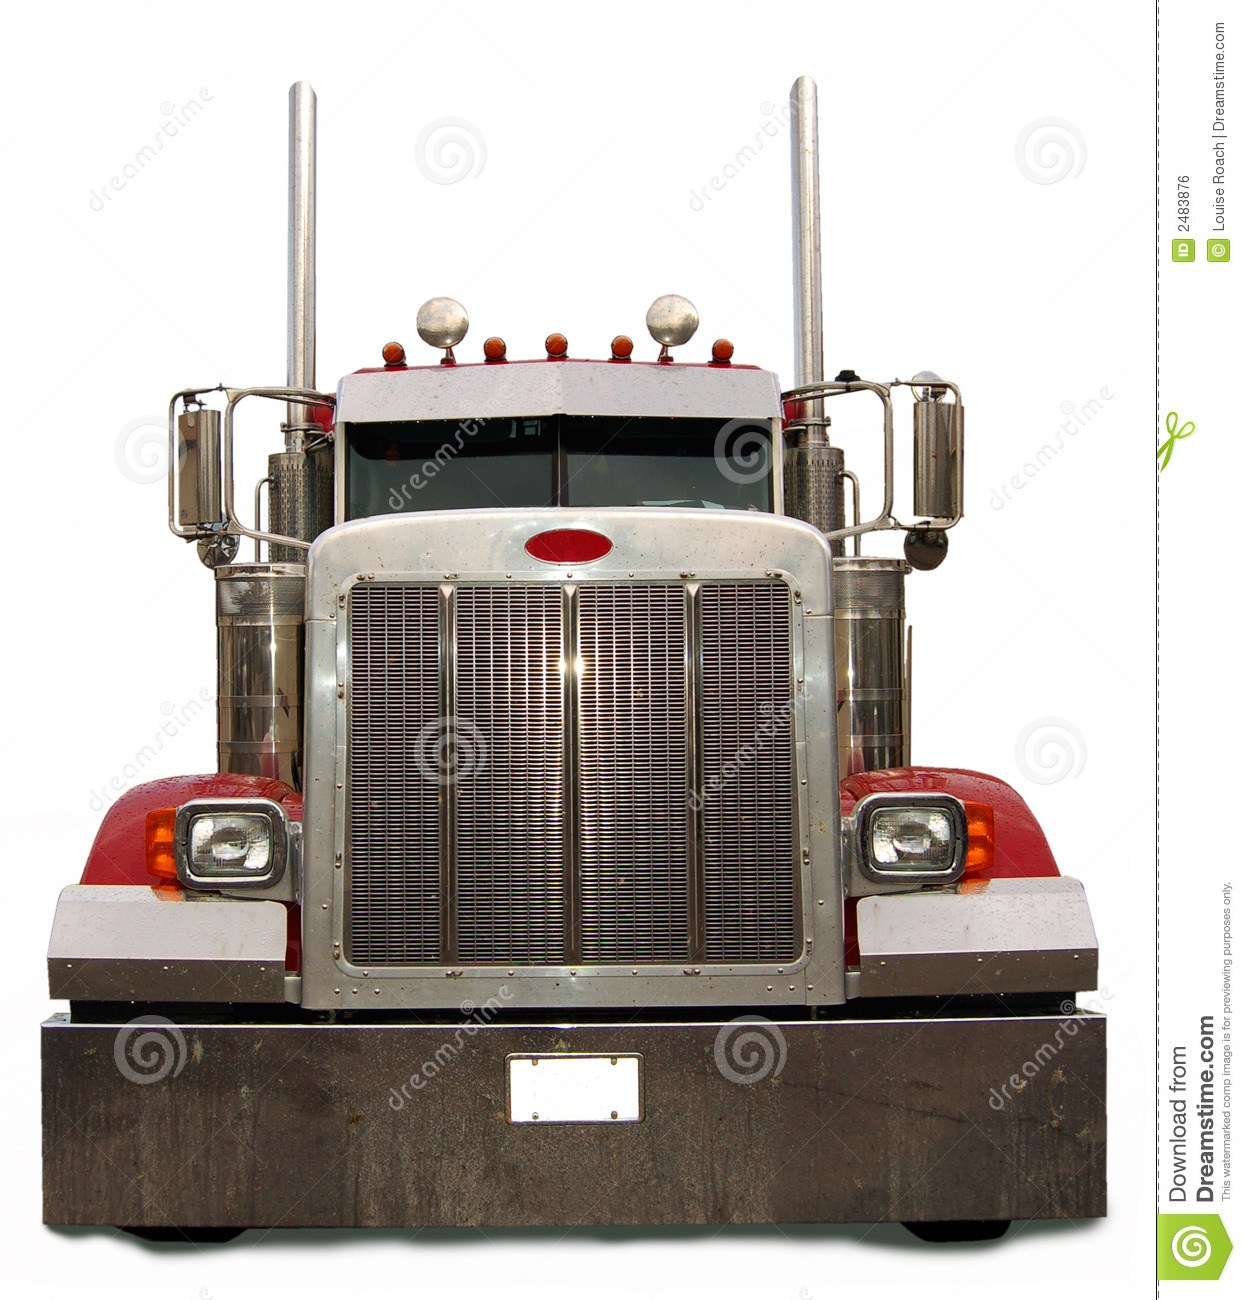 Truck grill clipart graphic free library Truck grill clipart 4 » Clipart Portal graphic free library